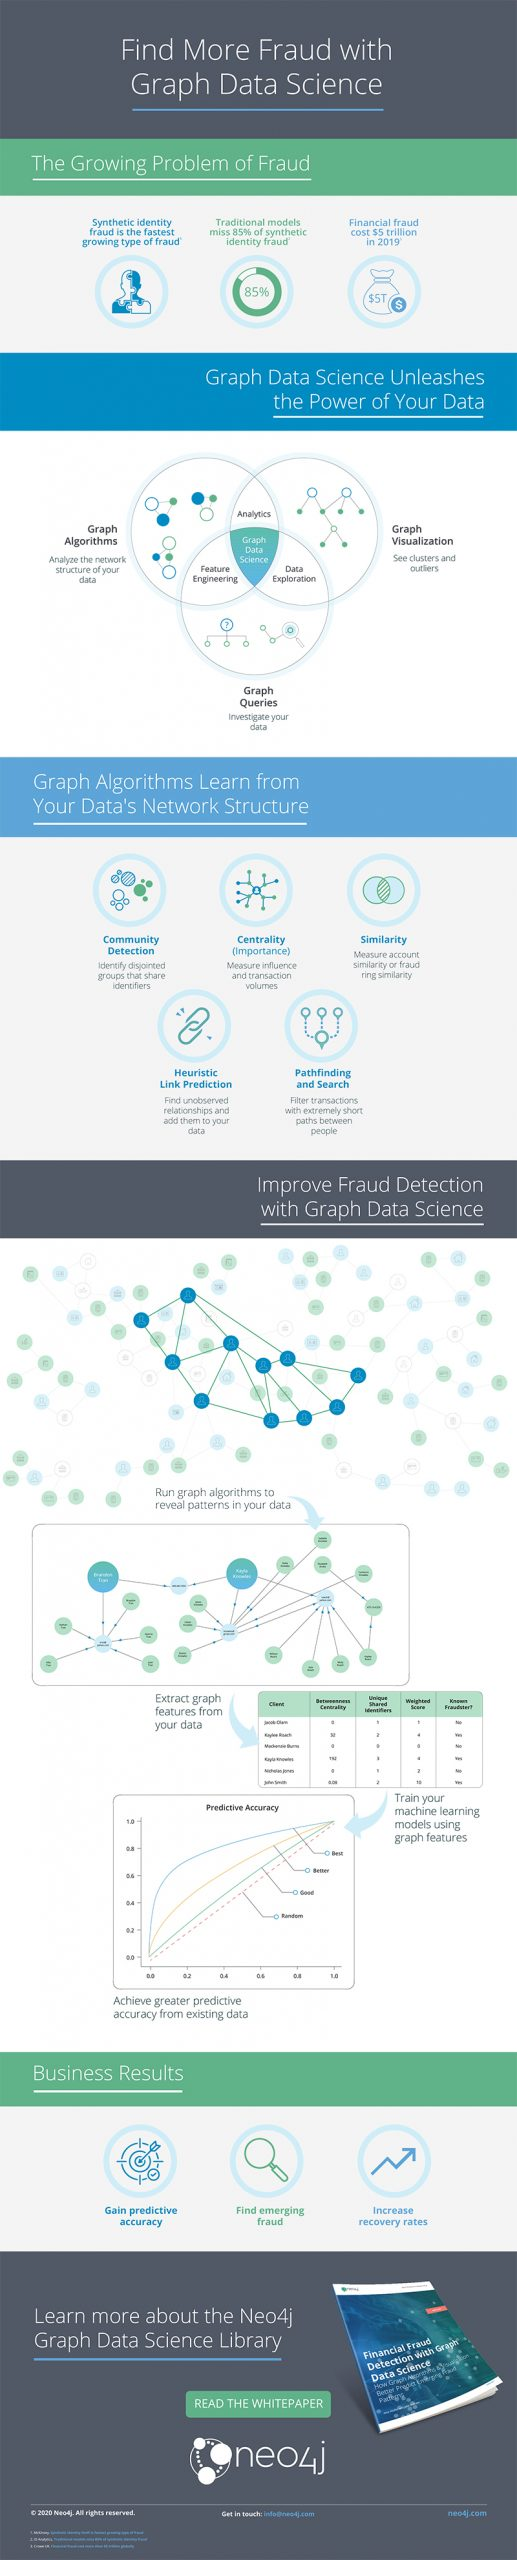 financial-fraud-detection-graph-data-science